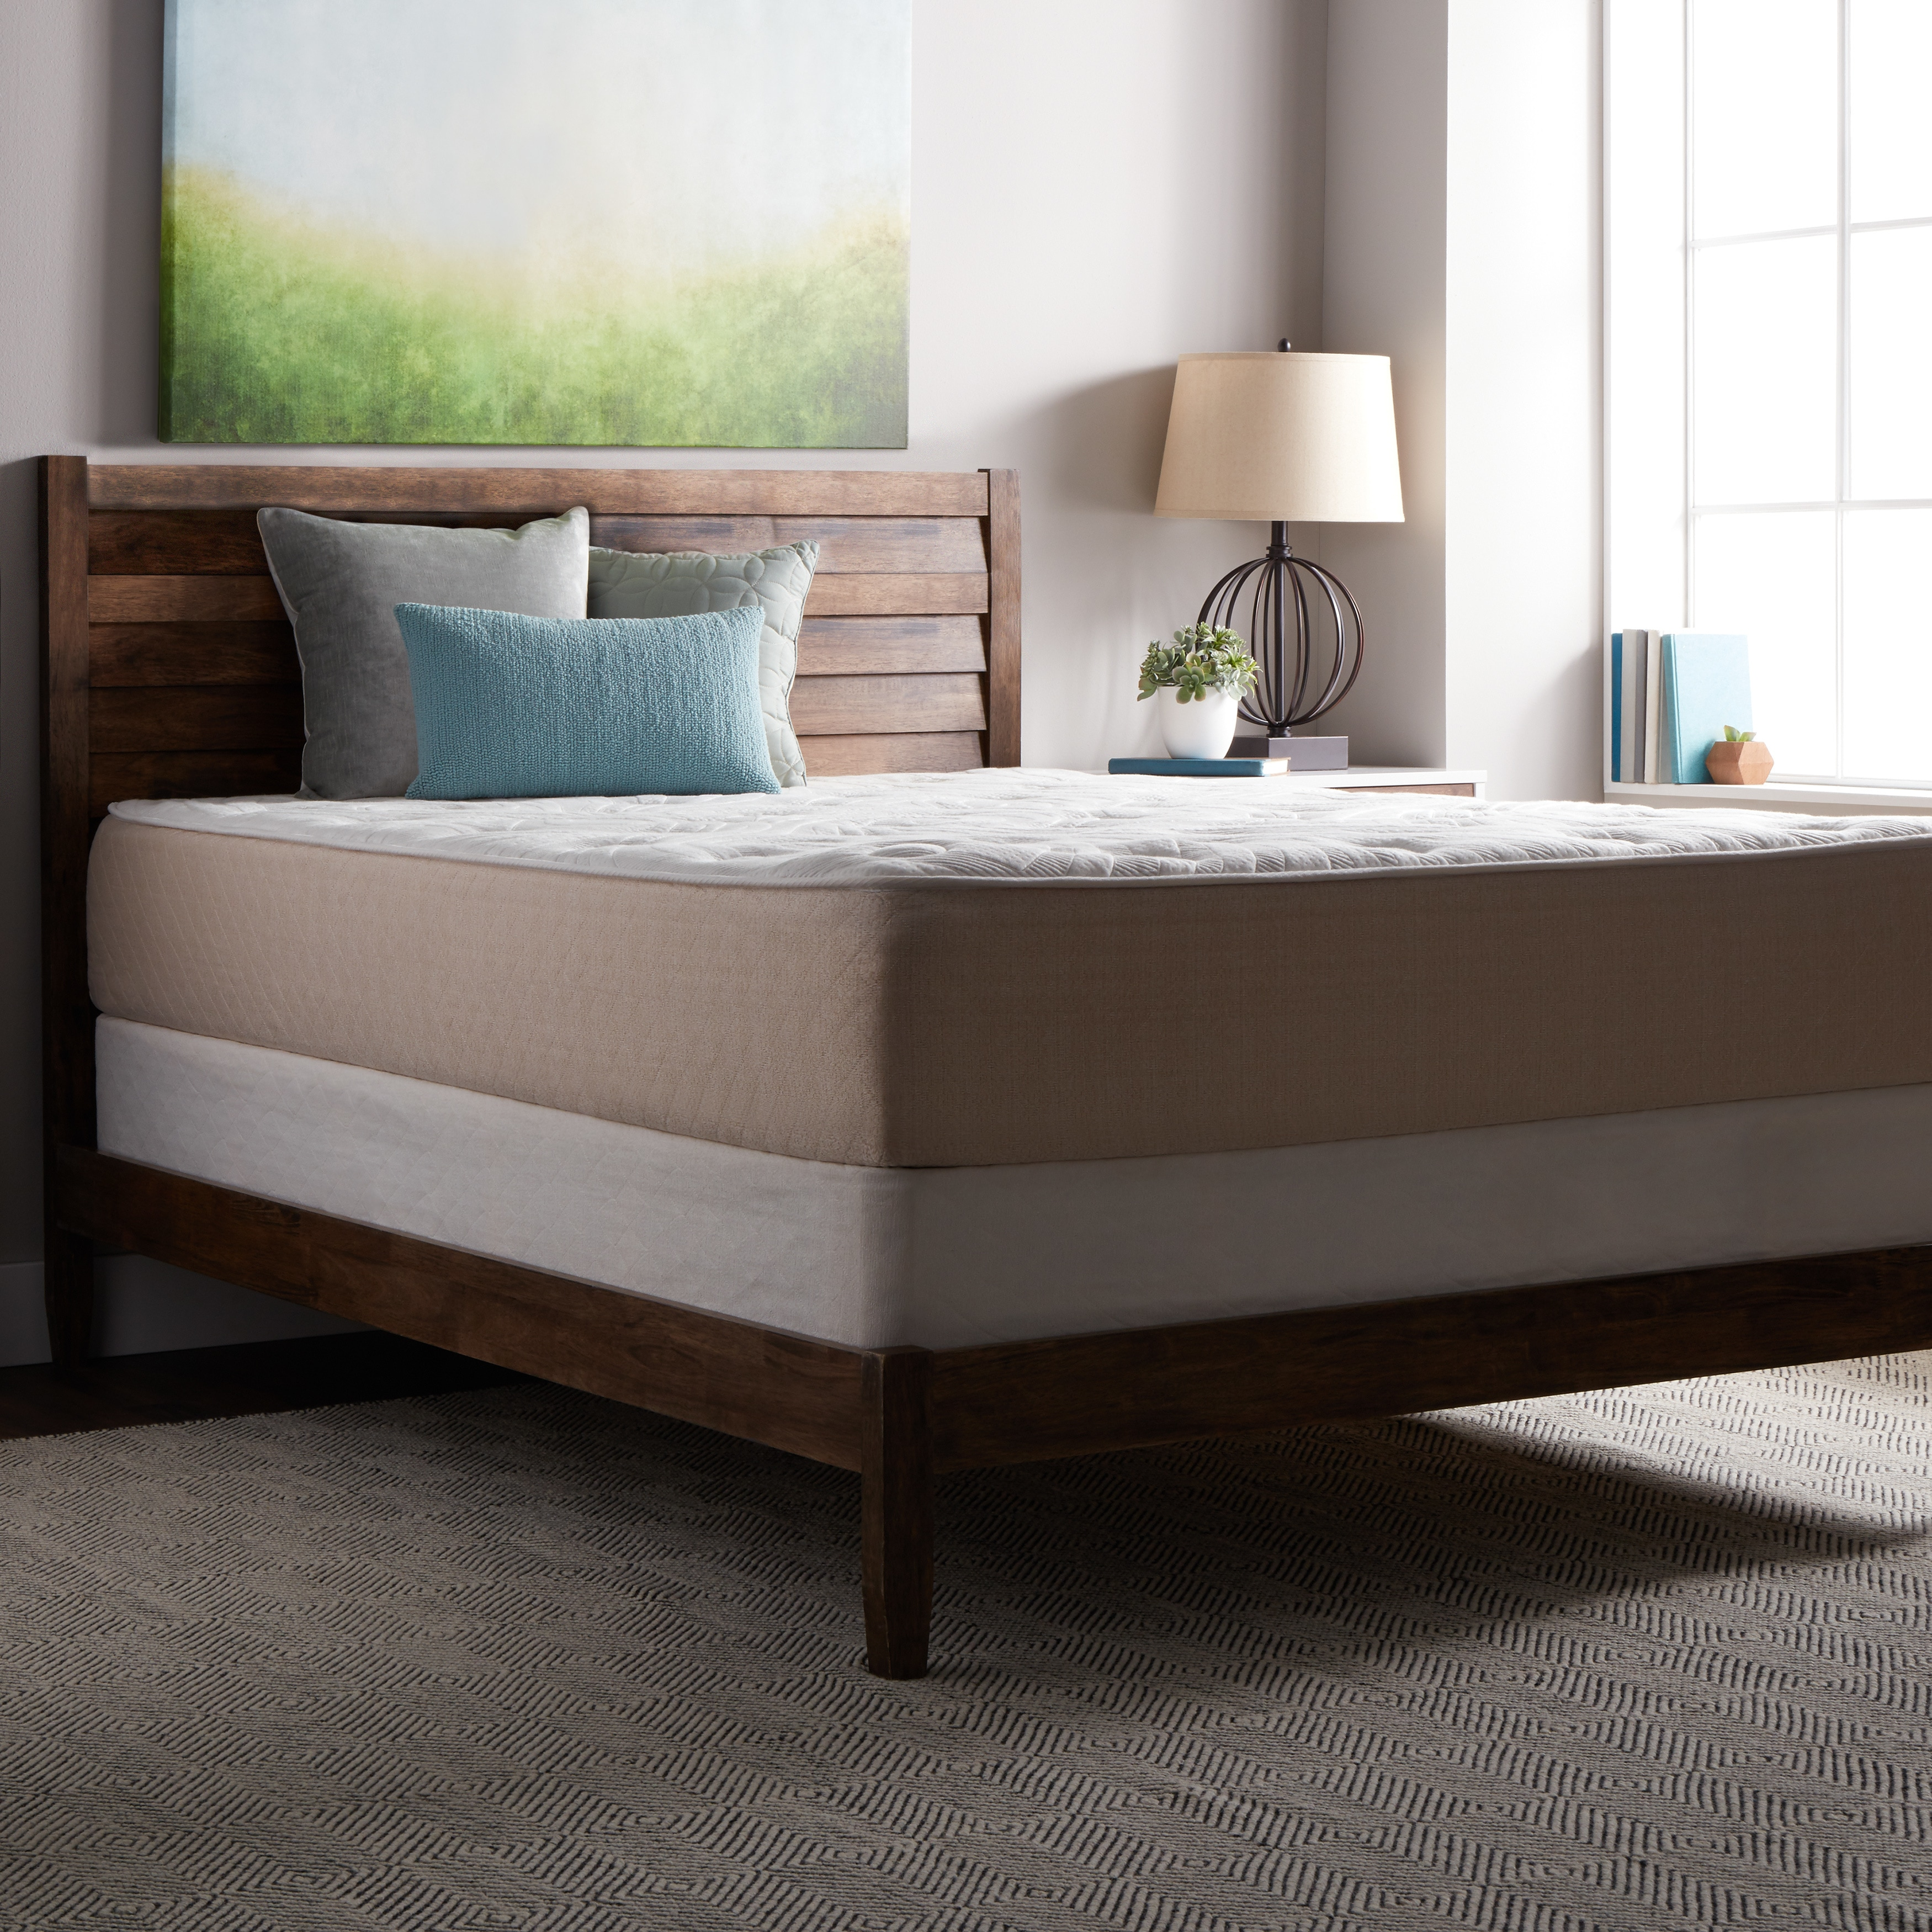 Select Luxury Best Quilted 12-inch King Size Mattress and...